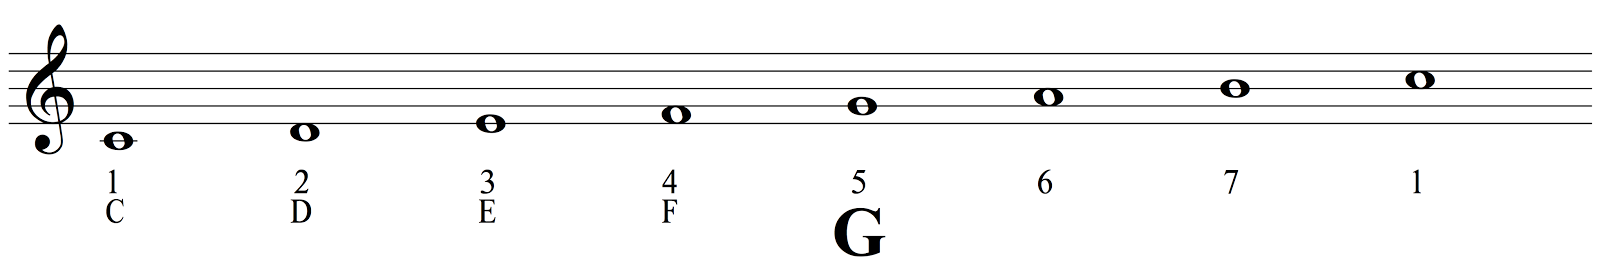 Counting Up To The Fifth From The Tonic In C Major